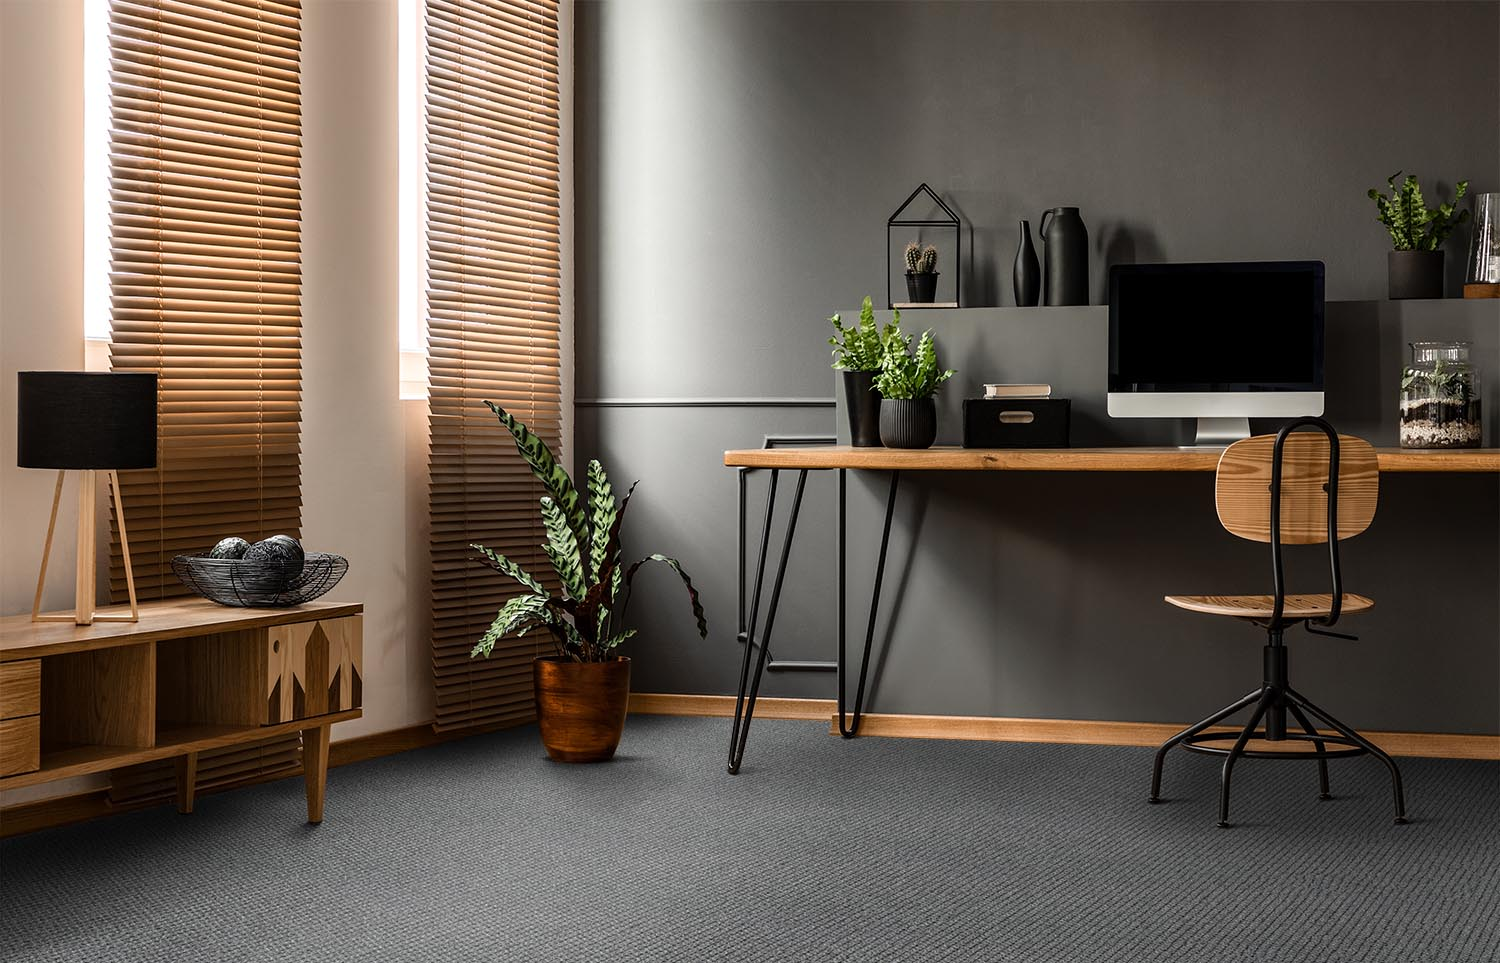 Co-Exist - One Accord home office